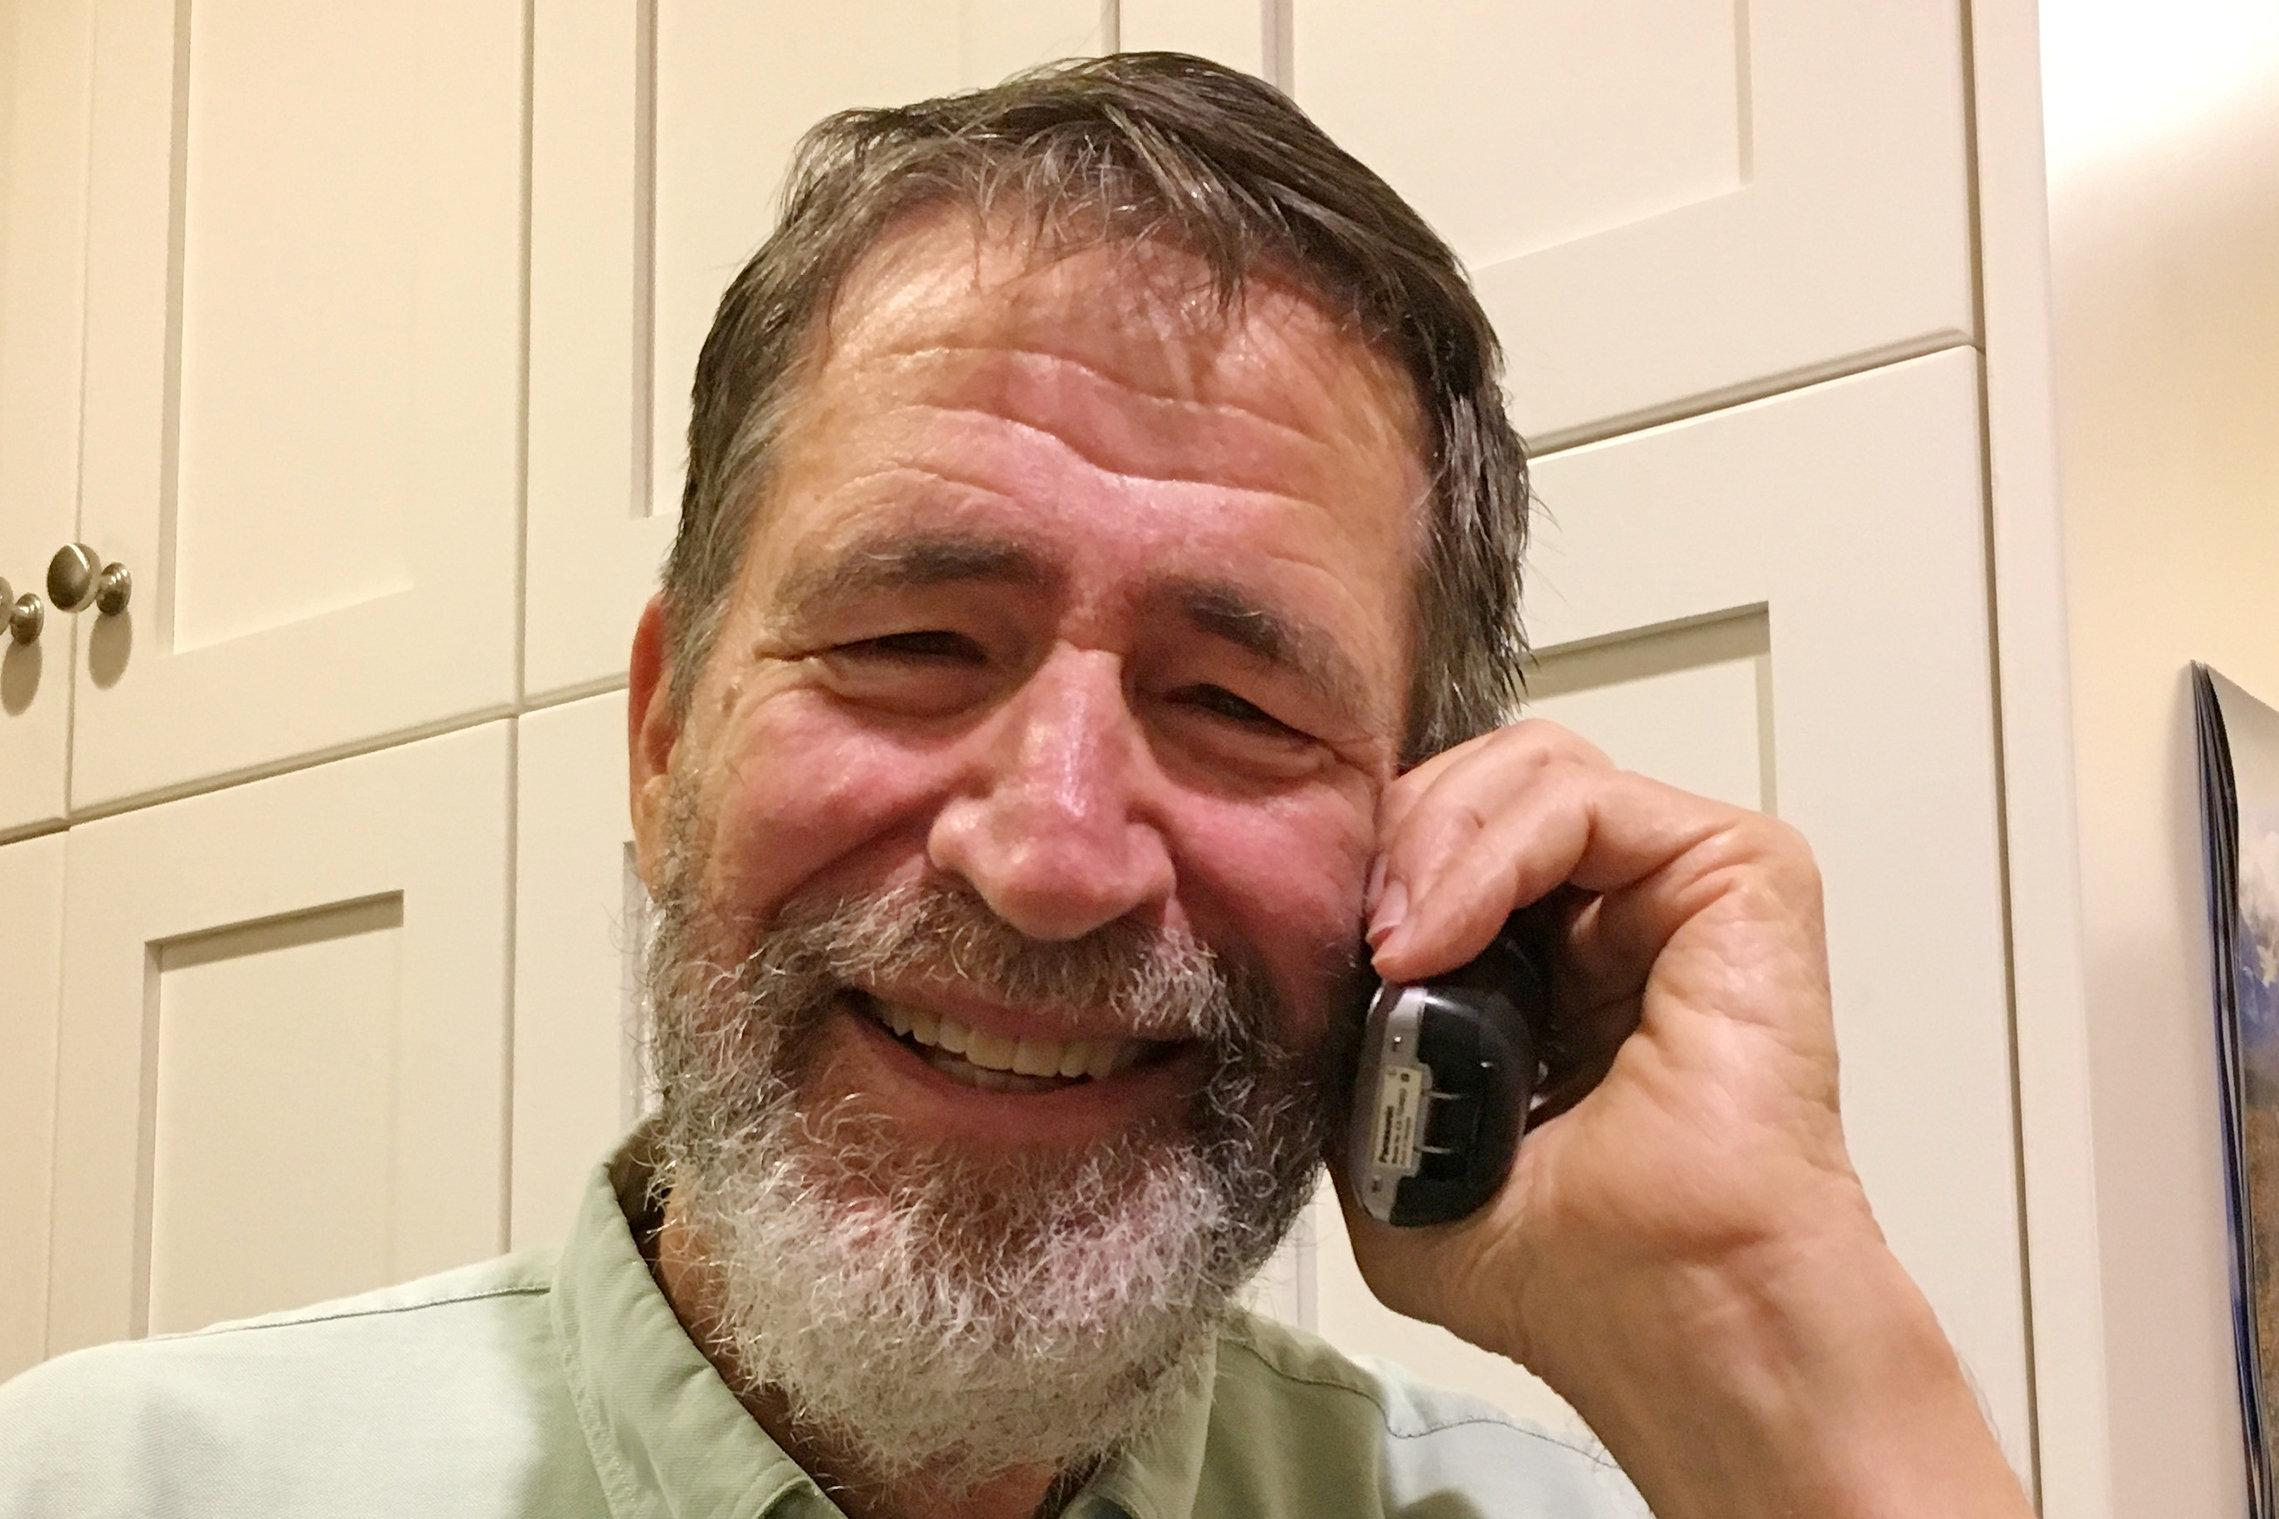 George P. Smith from the University of Missouri, a winner of the 2018 Nobel Prize for Chemistry, takes phone calls from well-wishers at his home in Columbia, Missouri, U.S. October 3, 2018.   Courtesy of Marjorie Sable/Handout via